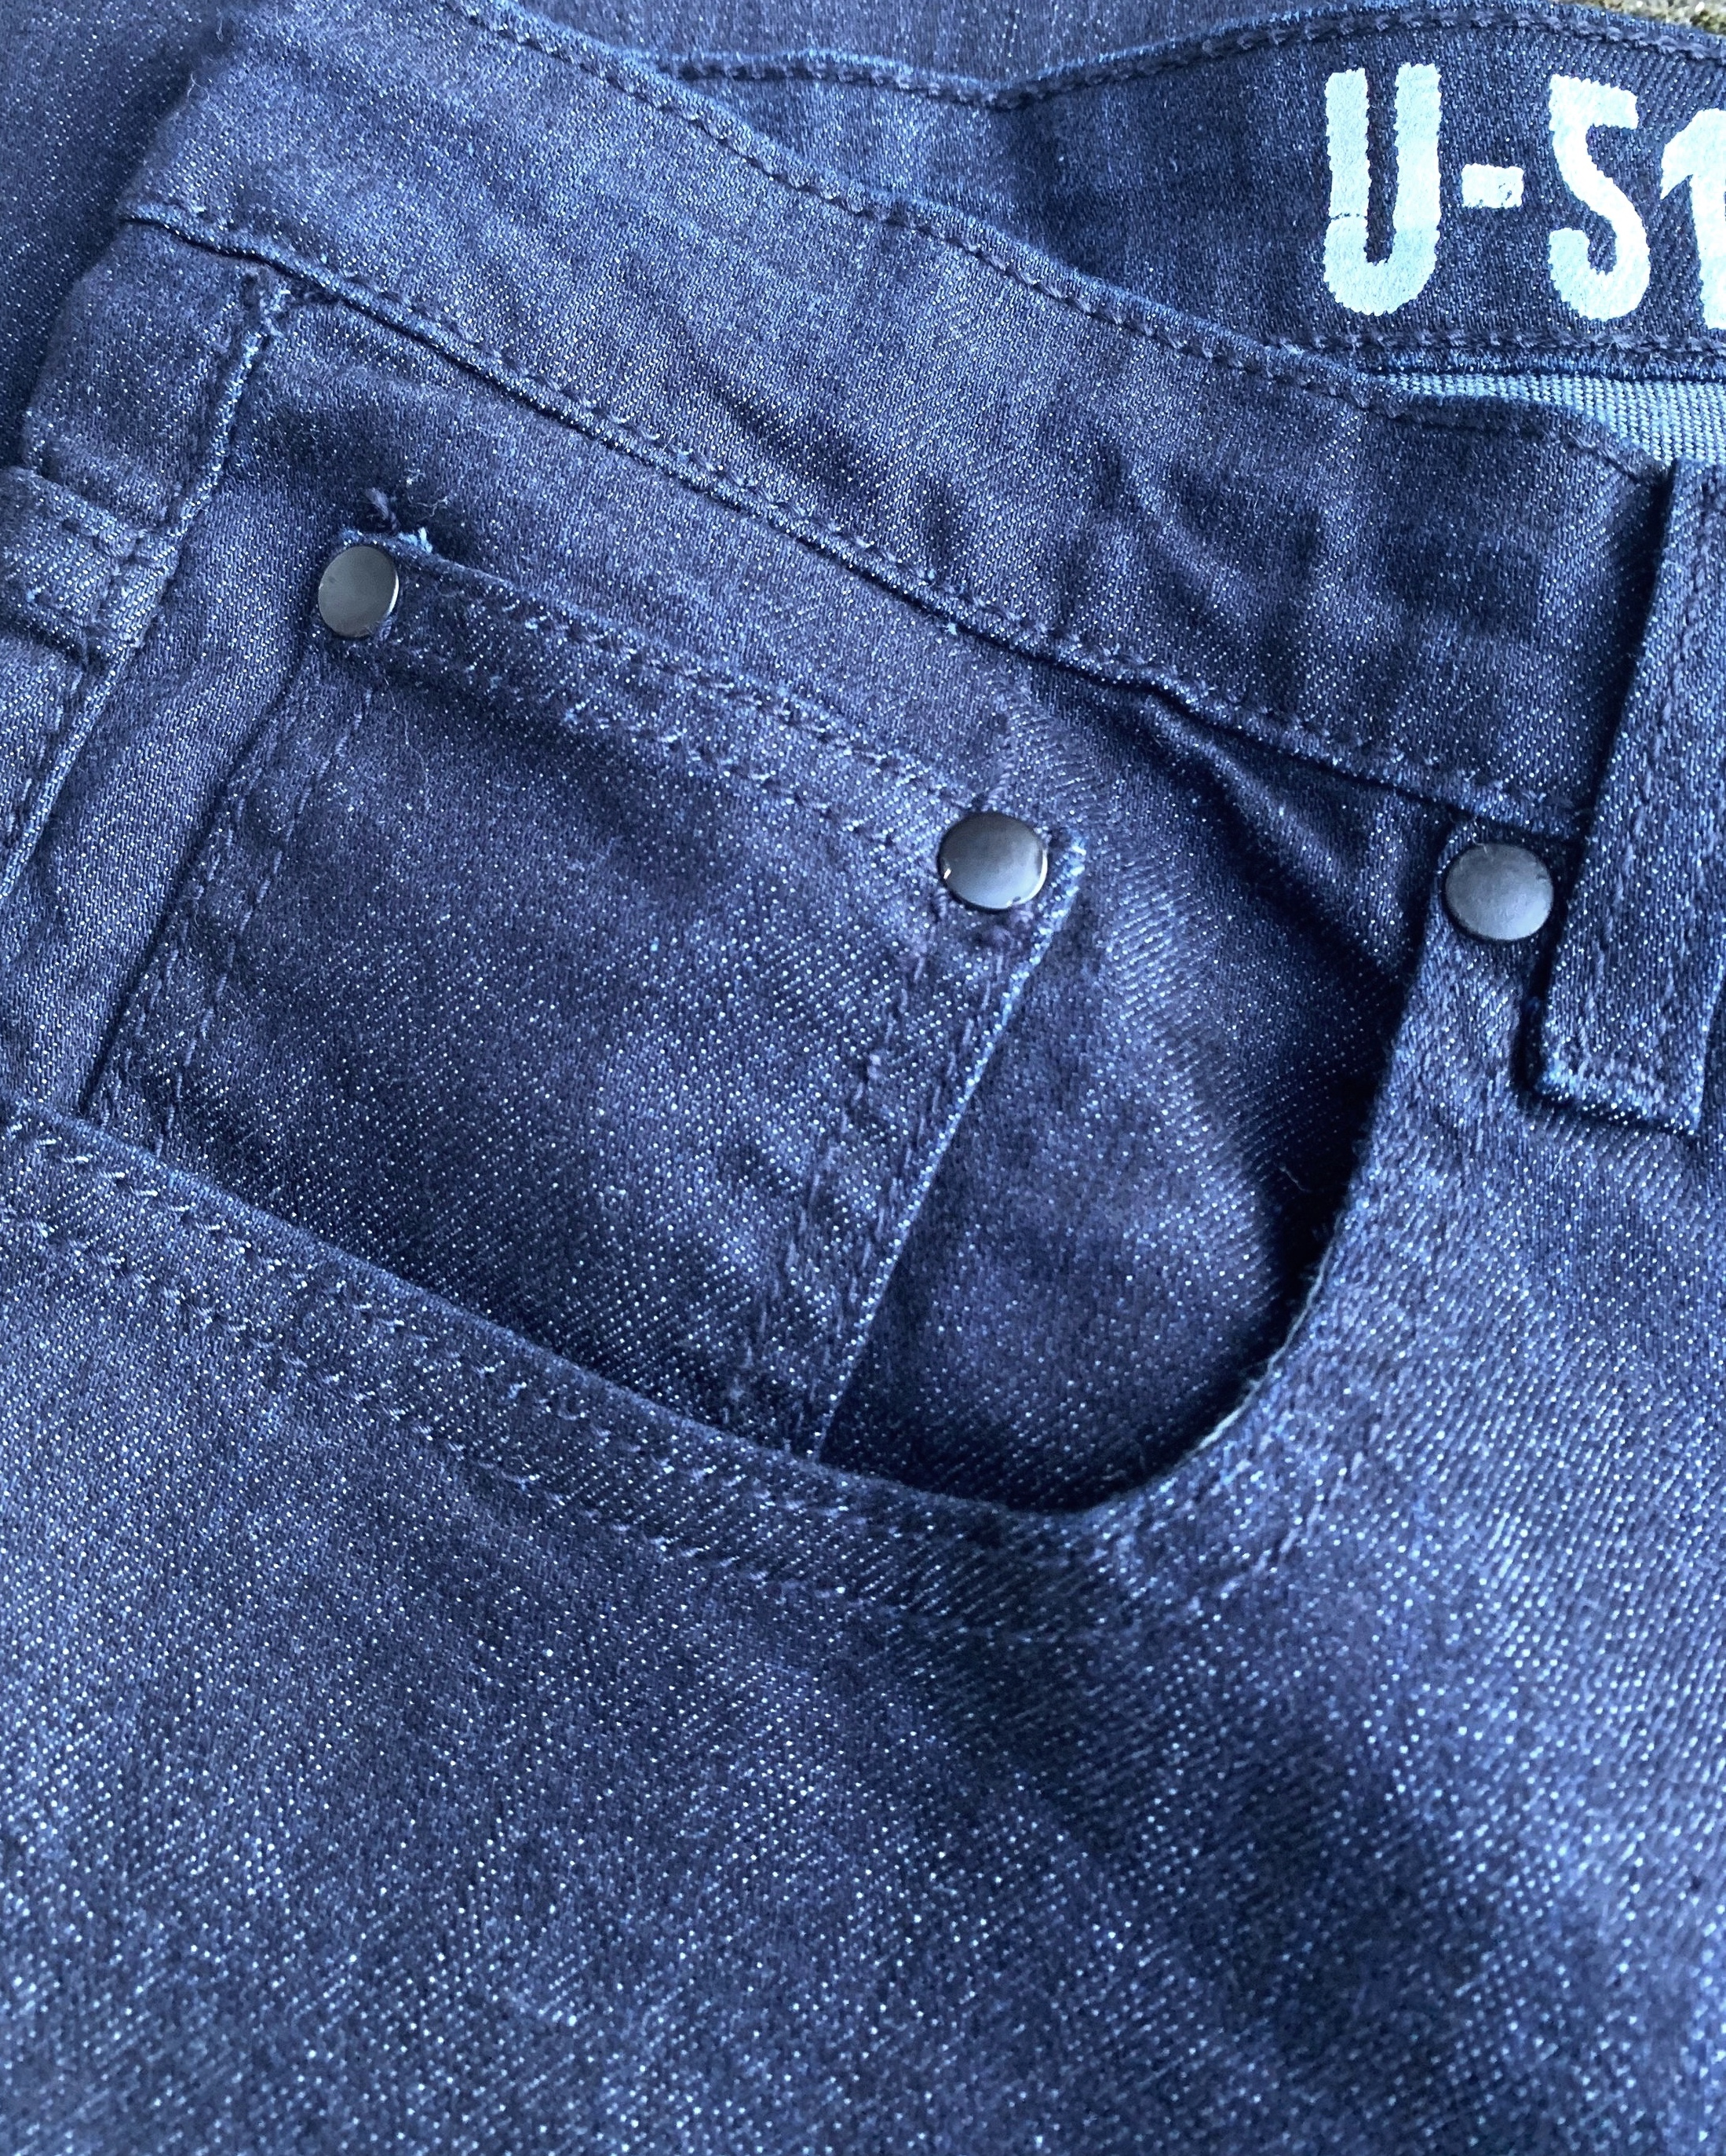 An up close view of the cone denim fabric - the gorgeous indigo hue should only get more beautiful as they fade in a similar way to most raw selvedge denim out there